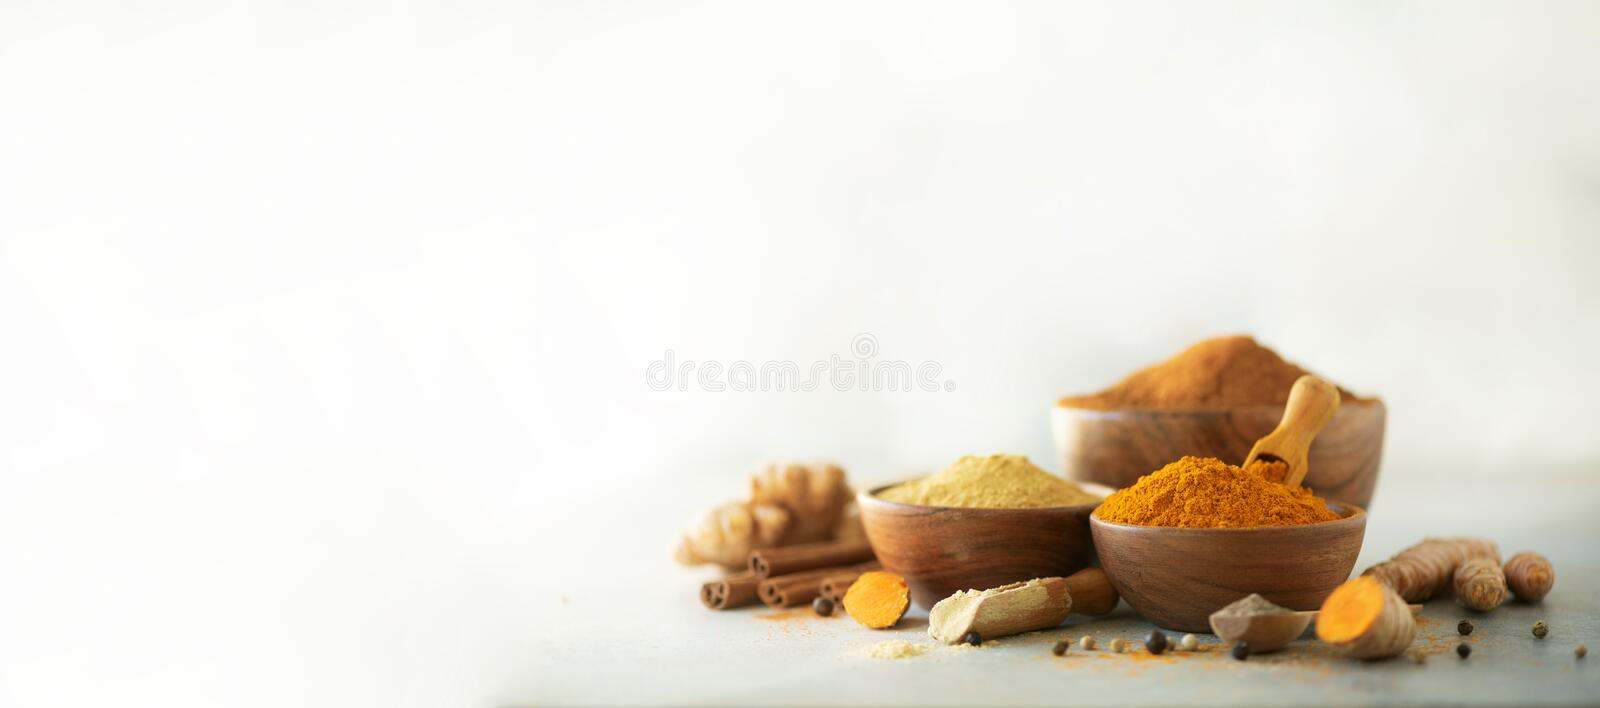 Ingredients for hot ayurvedic drink. Turmeric powder, curcuma root, cinnamon, ginger, lemon over grey background. Copy space, royalty free stock photos